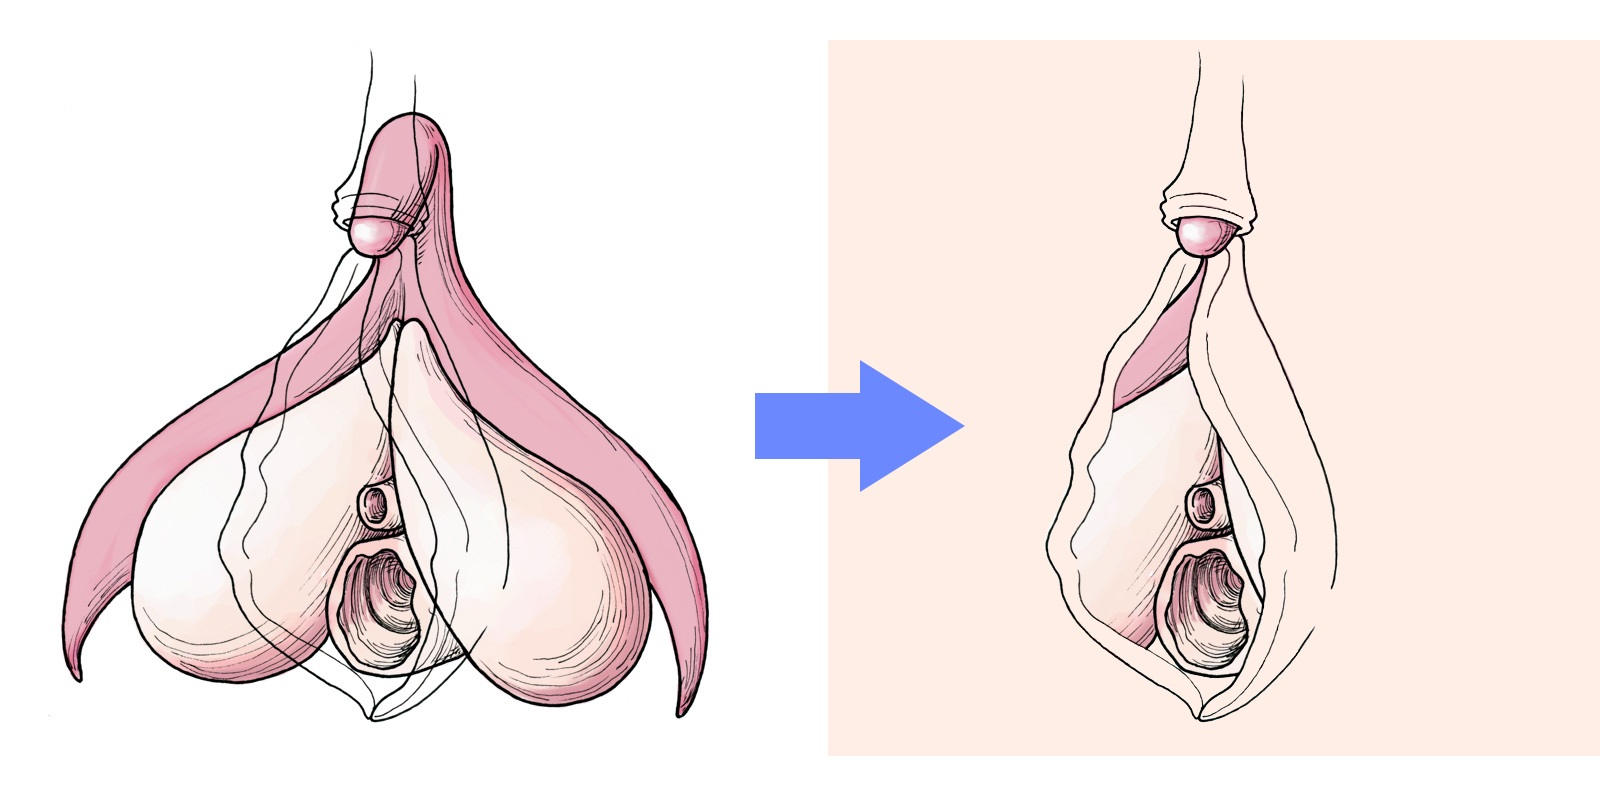 Most of the clitoris is hidden within the body.